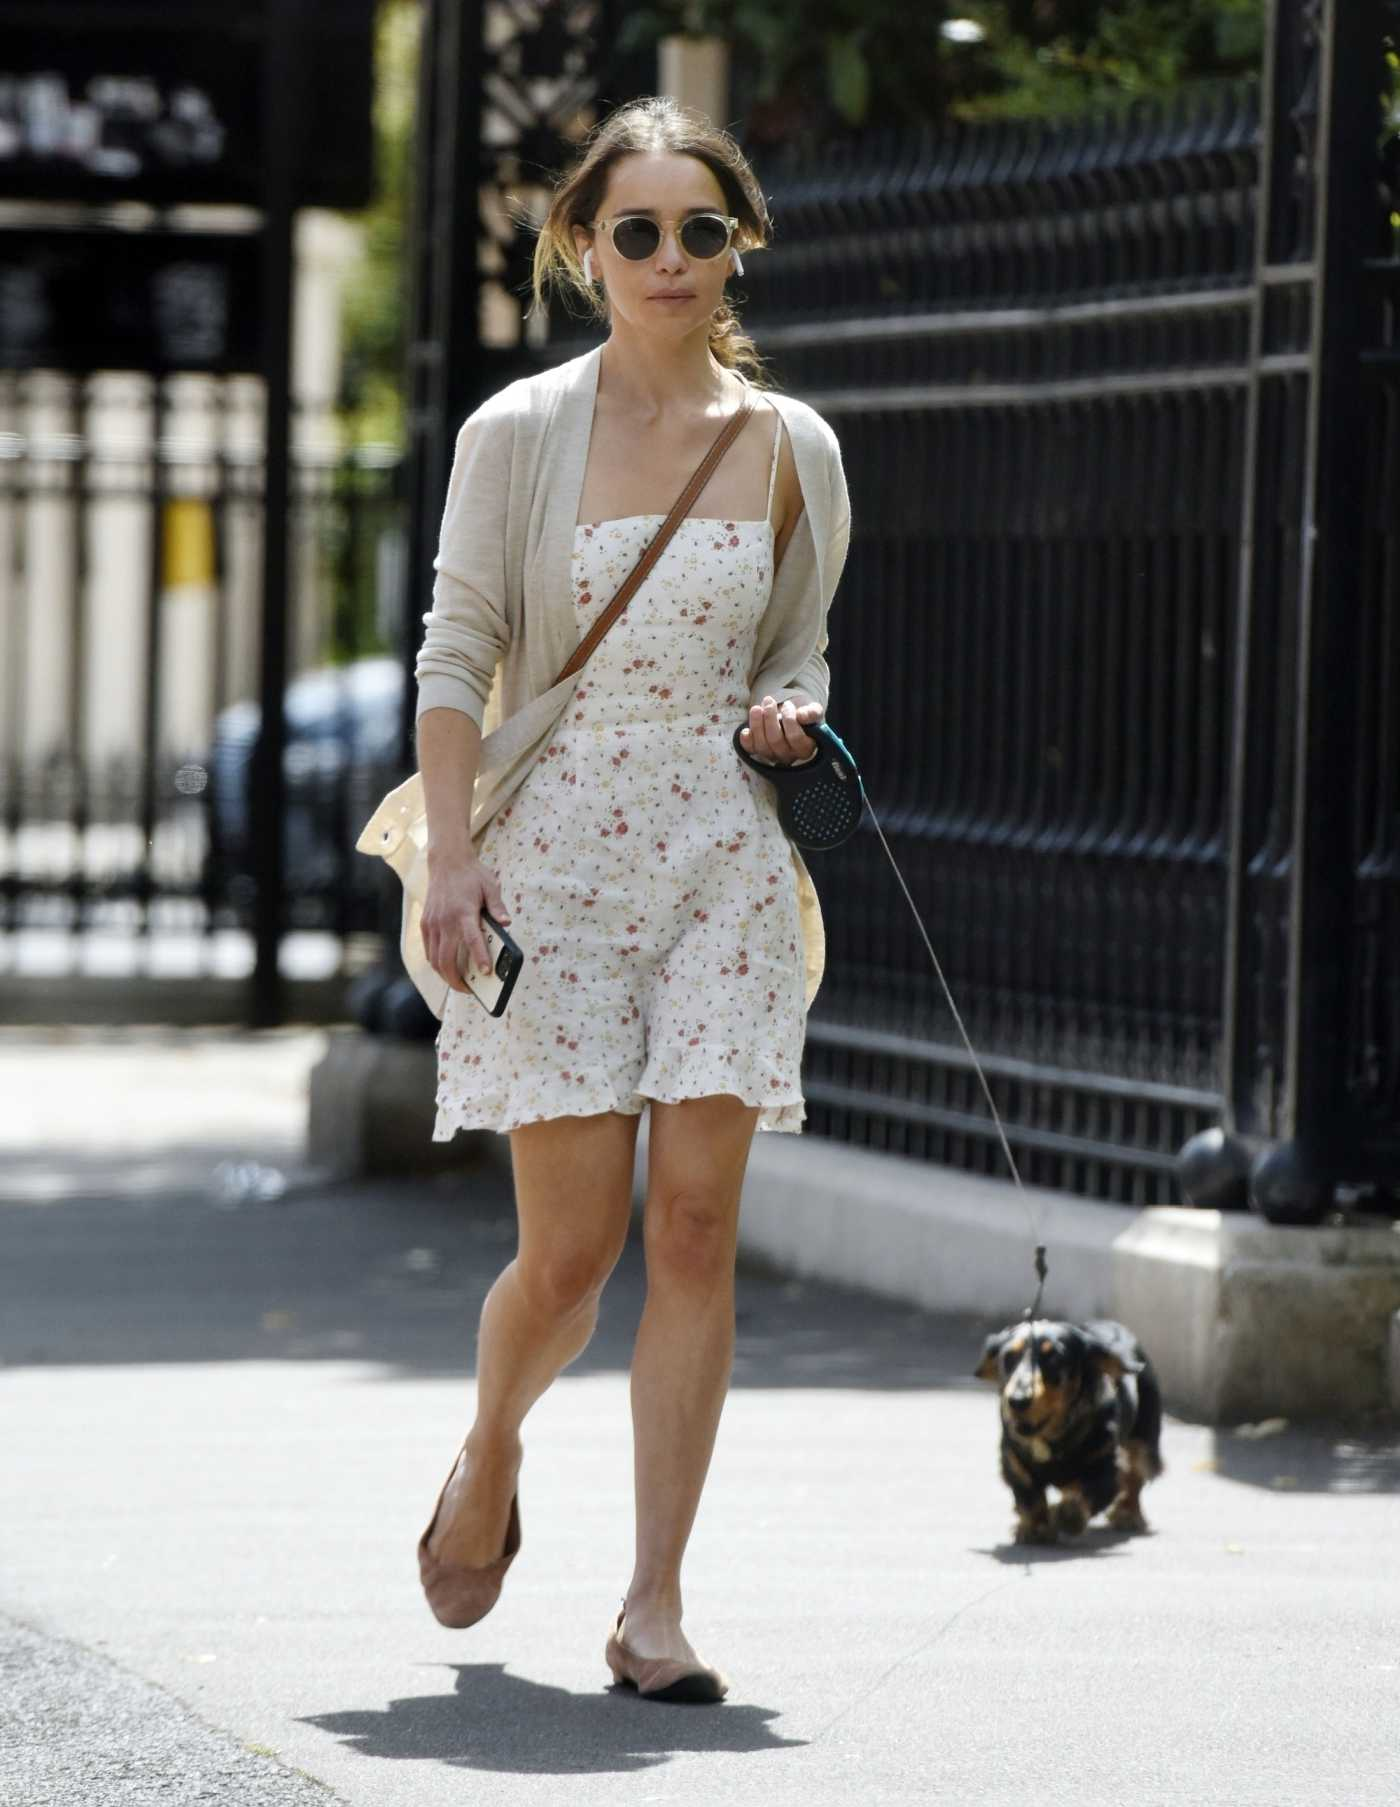 Emilia Clarke in a White Floral Dress Walks Her Dog in London 07/13/2020